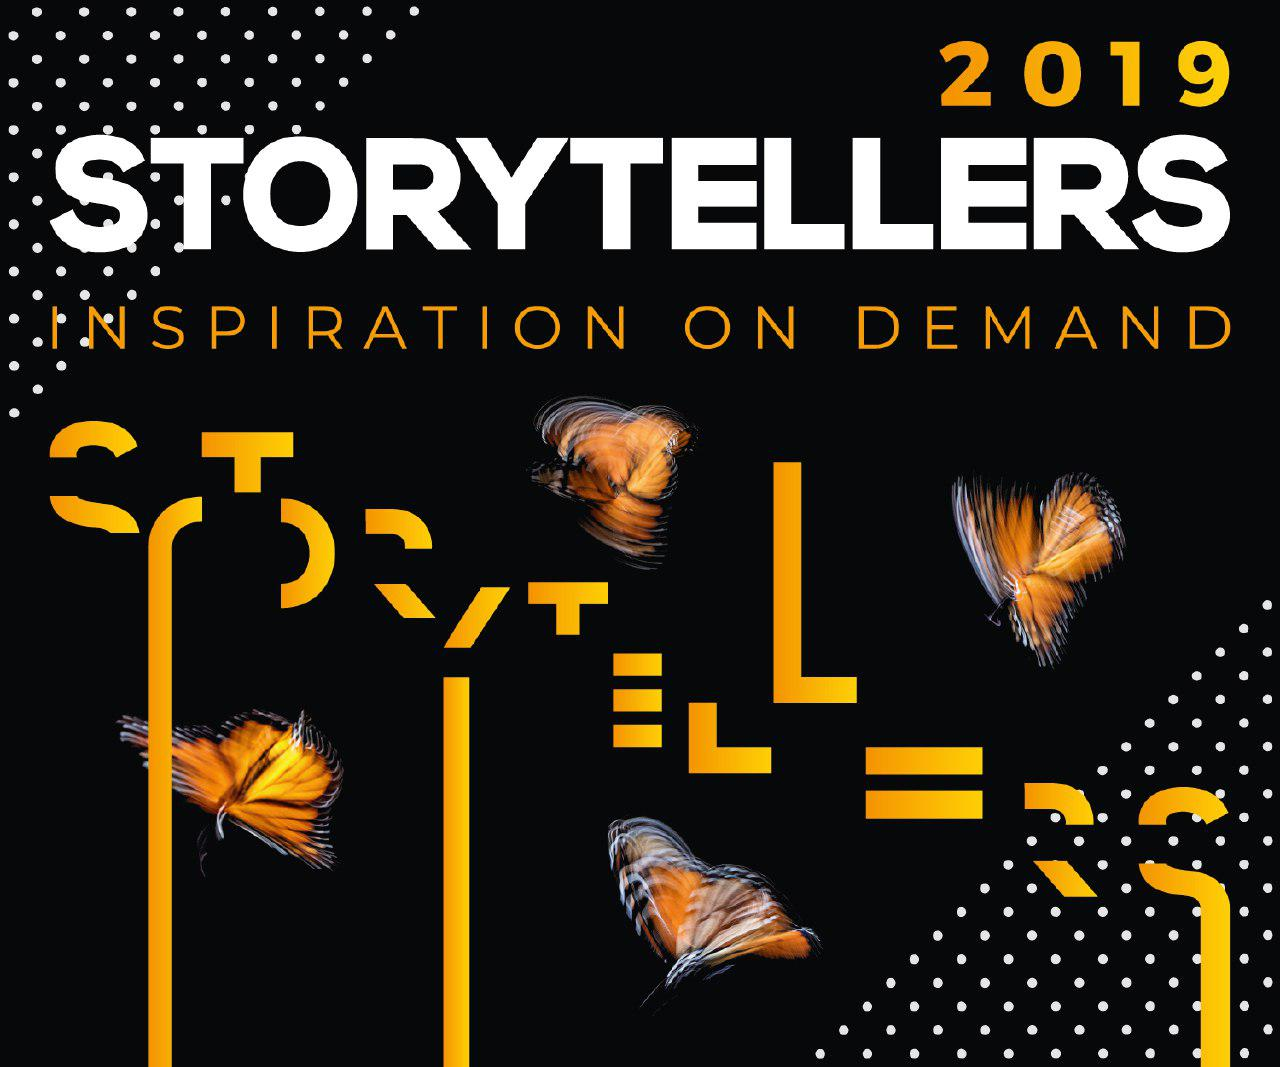 Storytellers 2019 inspiration on demand  2 поток